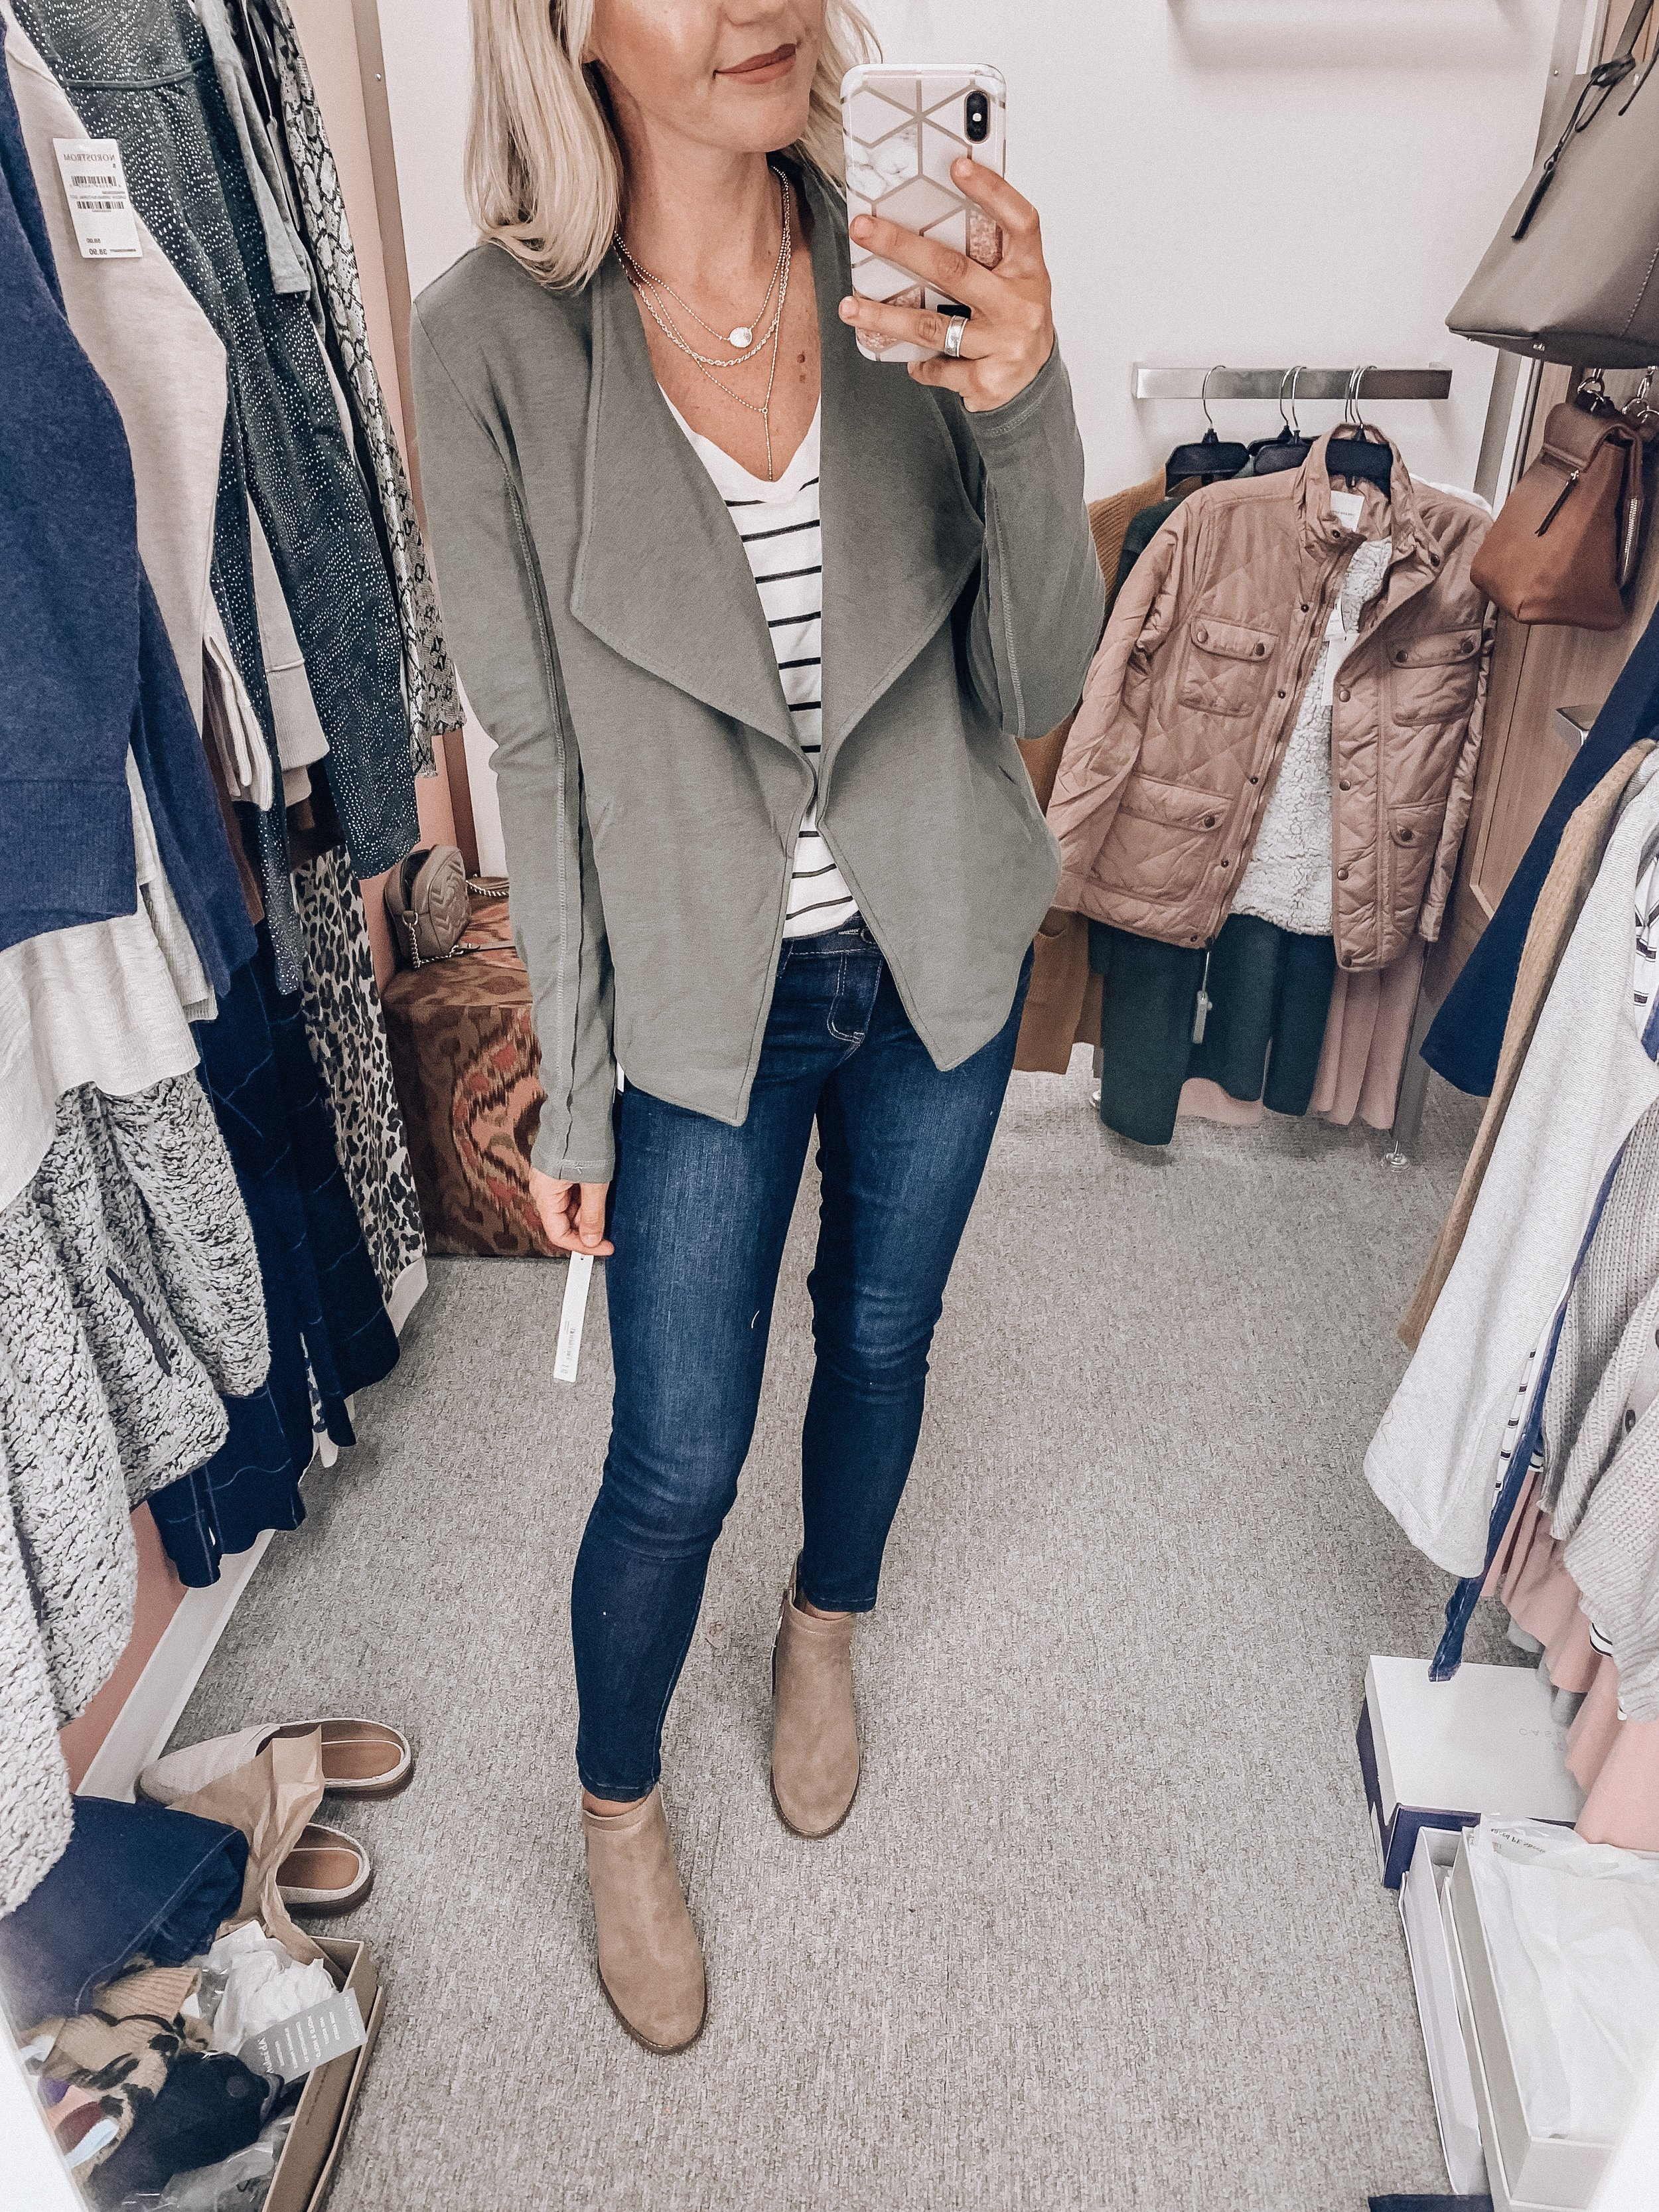 Cardigan: size small    Tee: size extra small    Jeans: size 4   Booties